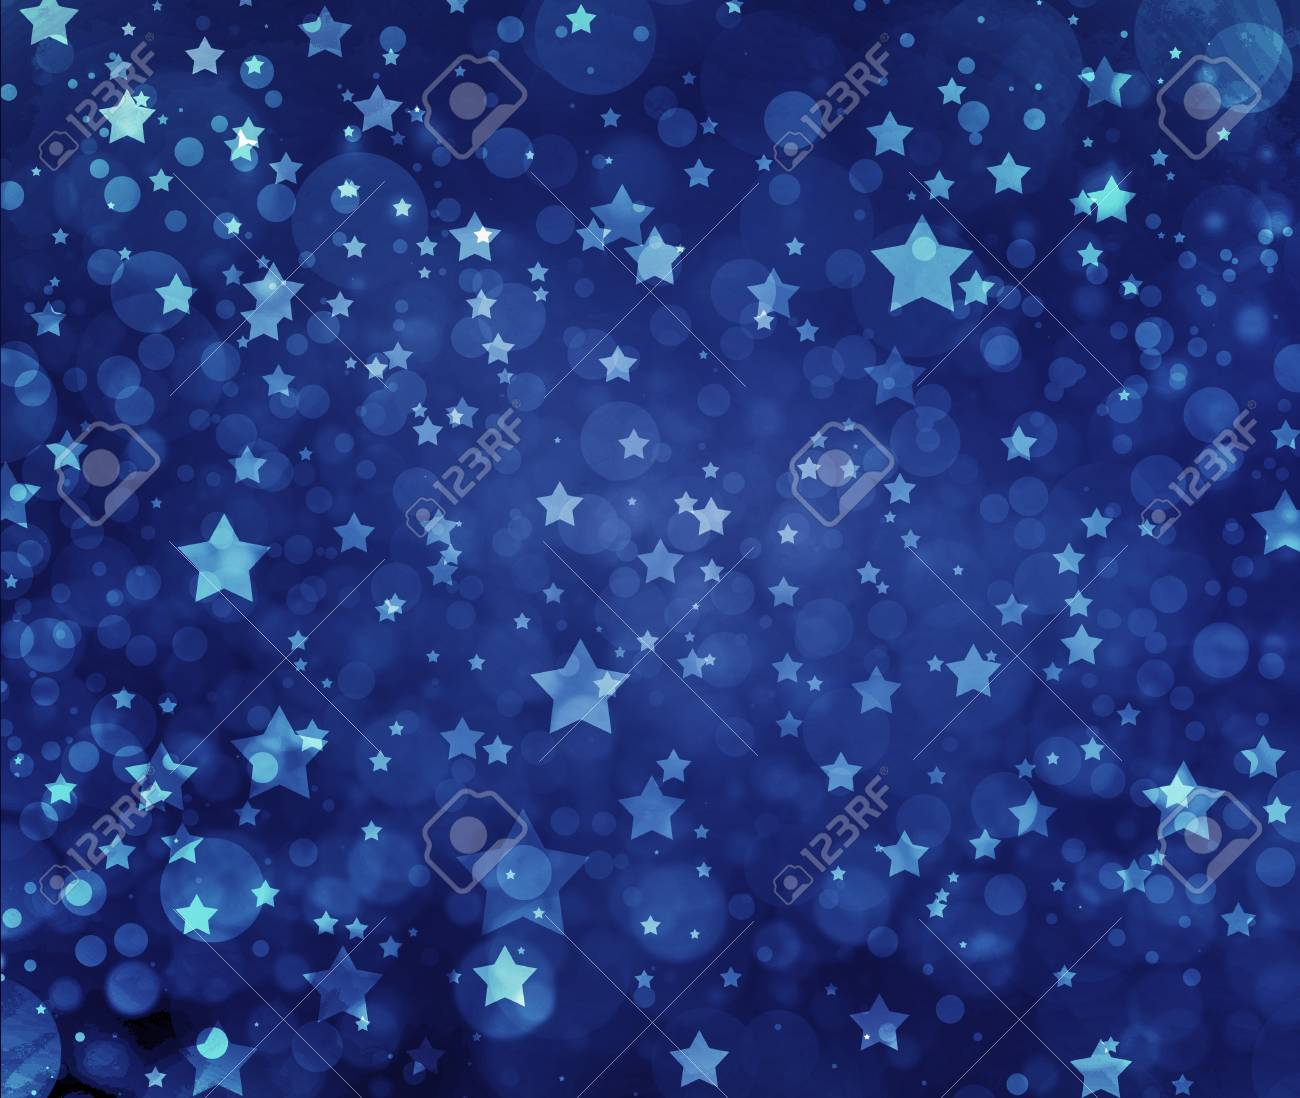 Stars On Blue Background Navy With White Glittering At Night